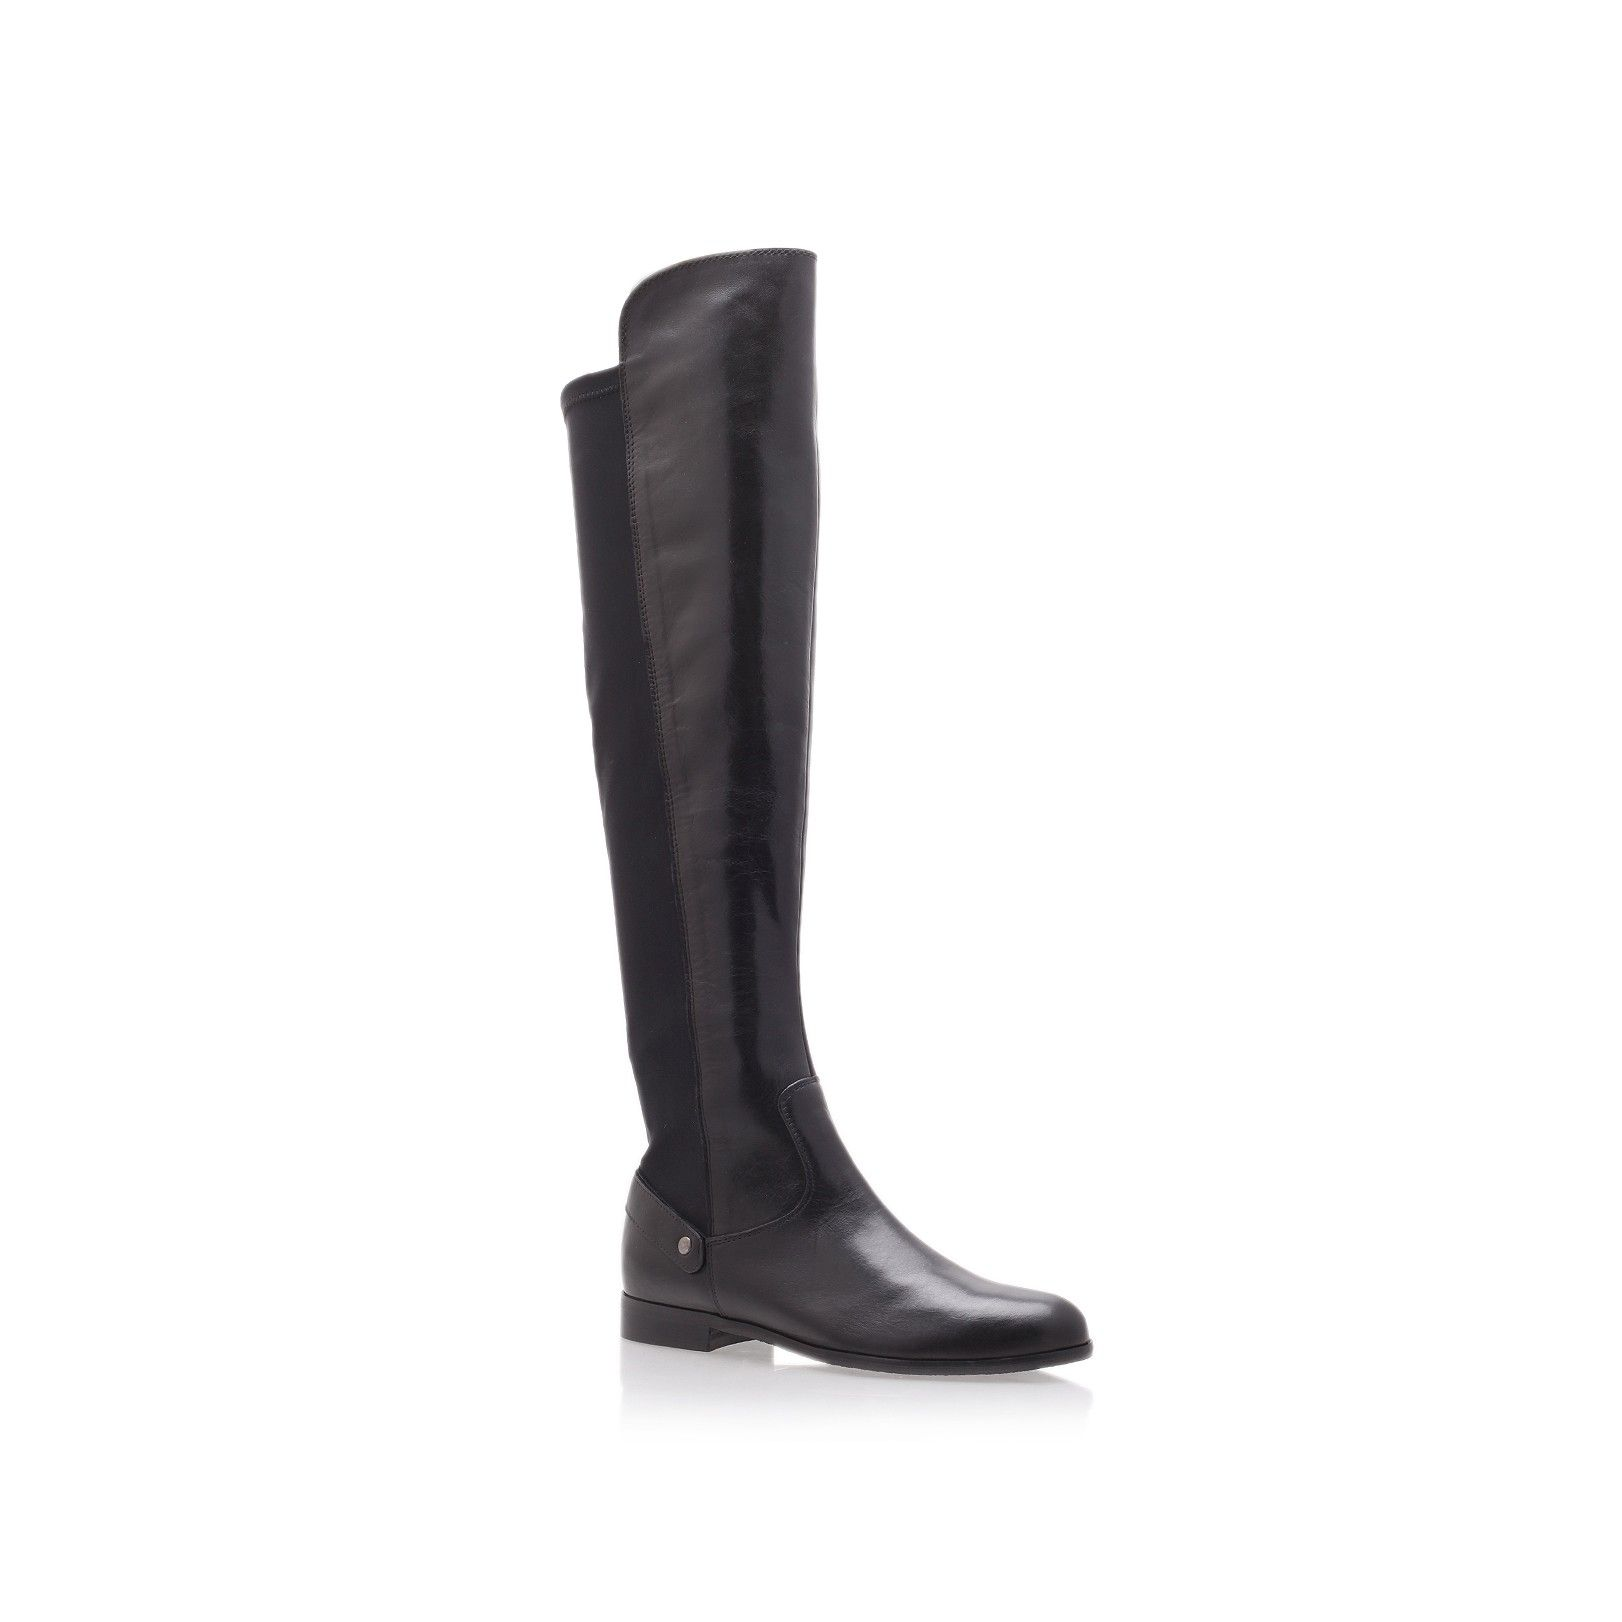 Discount Carvela Comfort Brown Vivian Knee-High Leather Boots for Women Sale